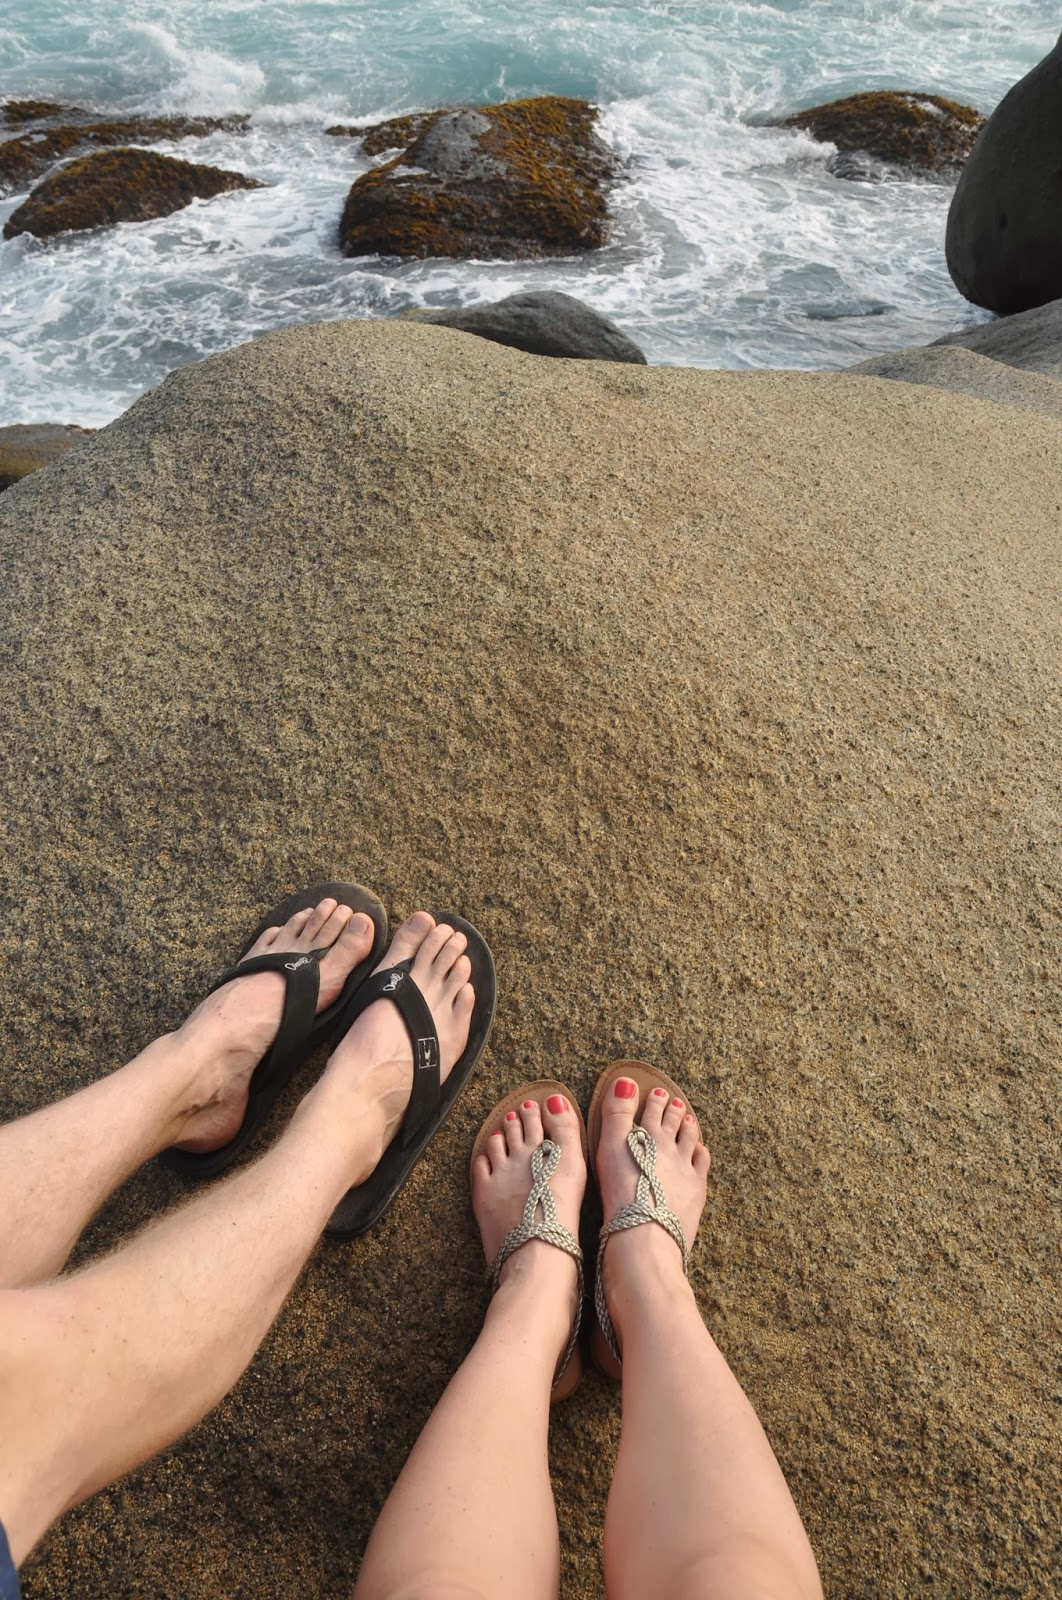 In love with Tayrona. (And yes, we like feet pictures!)